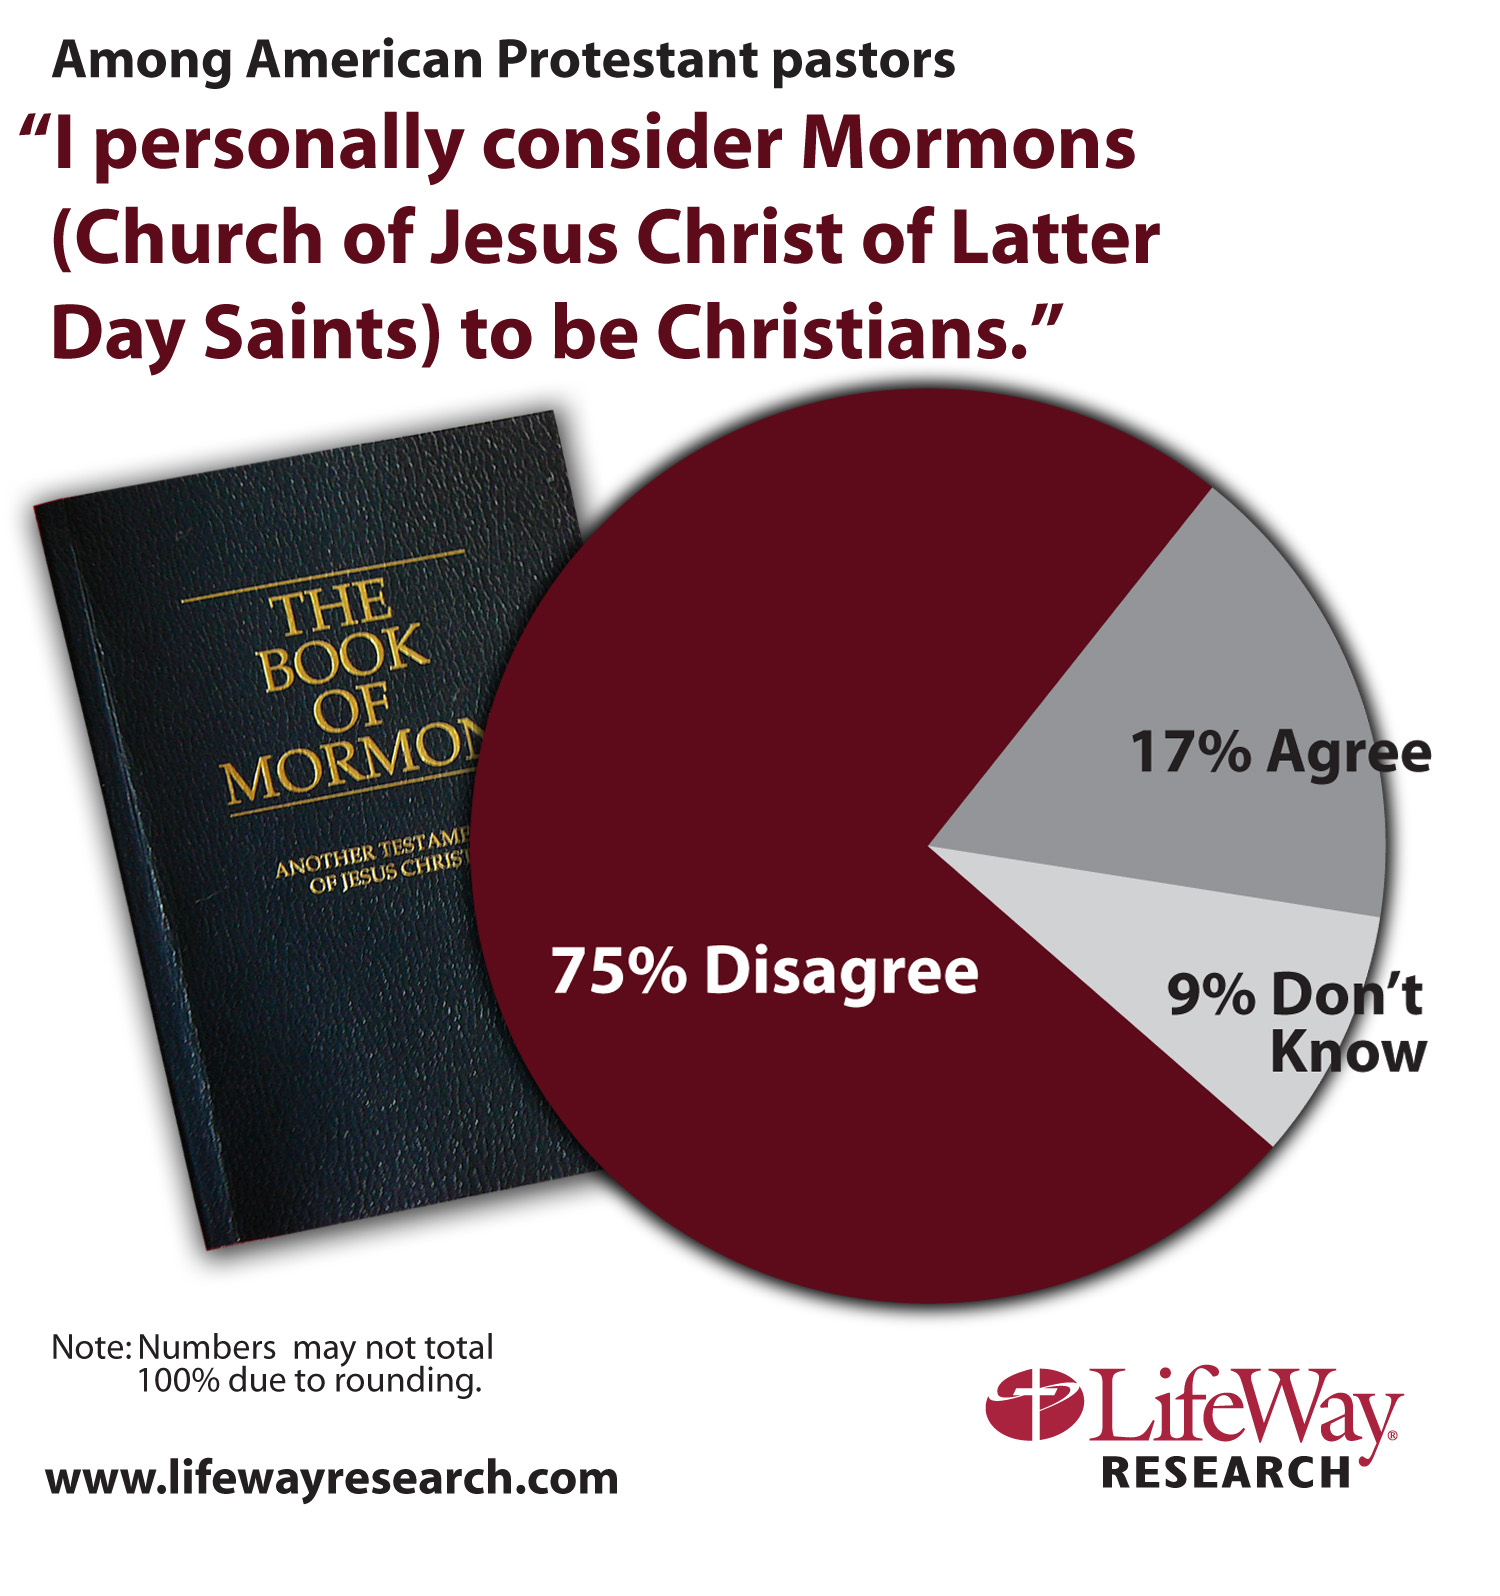 comparison of judaism and mormonism Mormon vs christian: a difference between mormons and christians is that christians believe holy trinity, mormons believe holy trinity to be 3 separate gods.